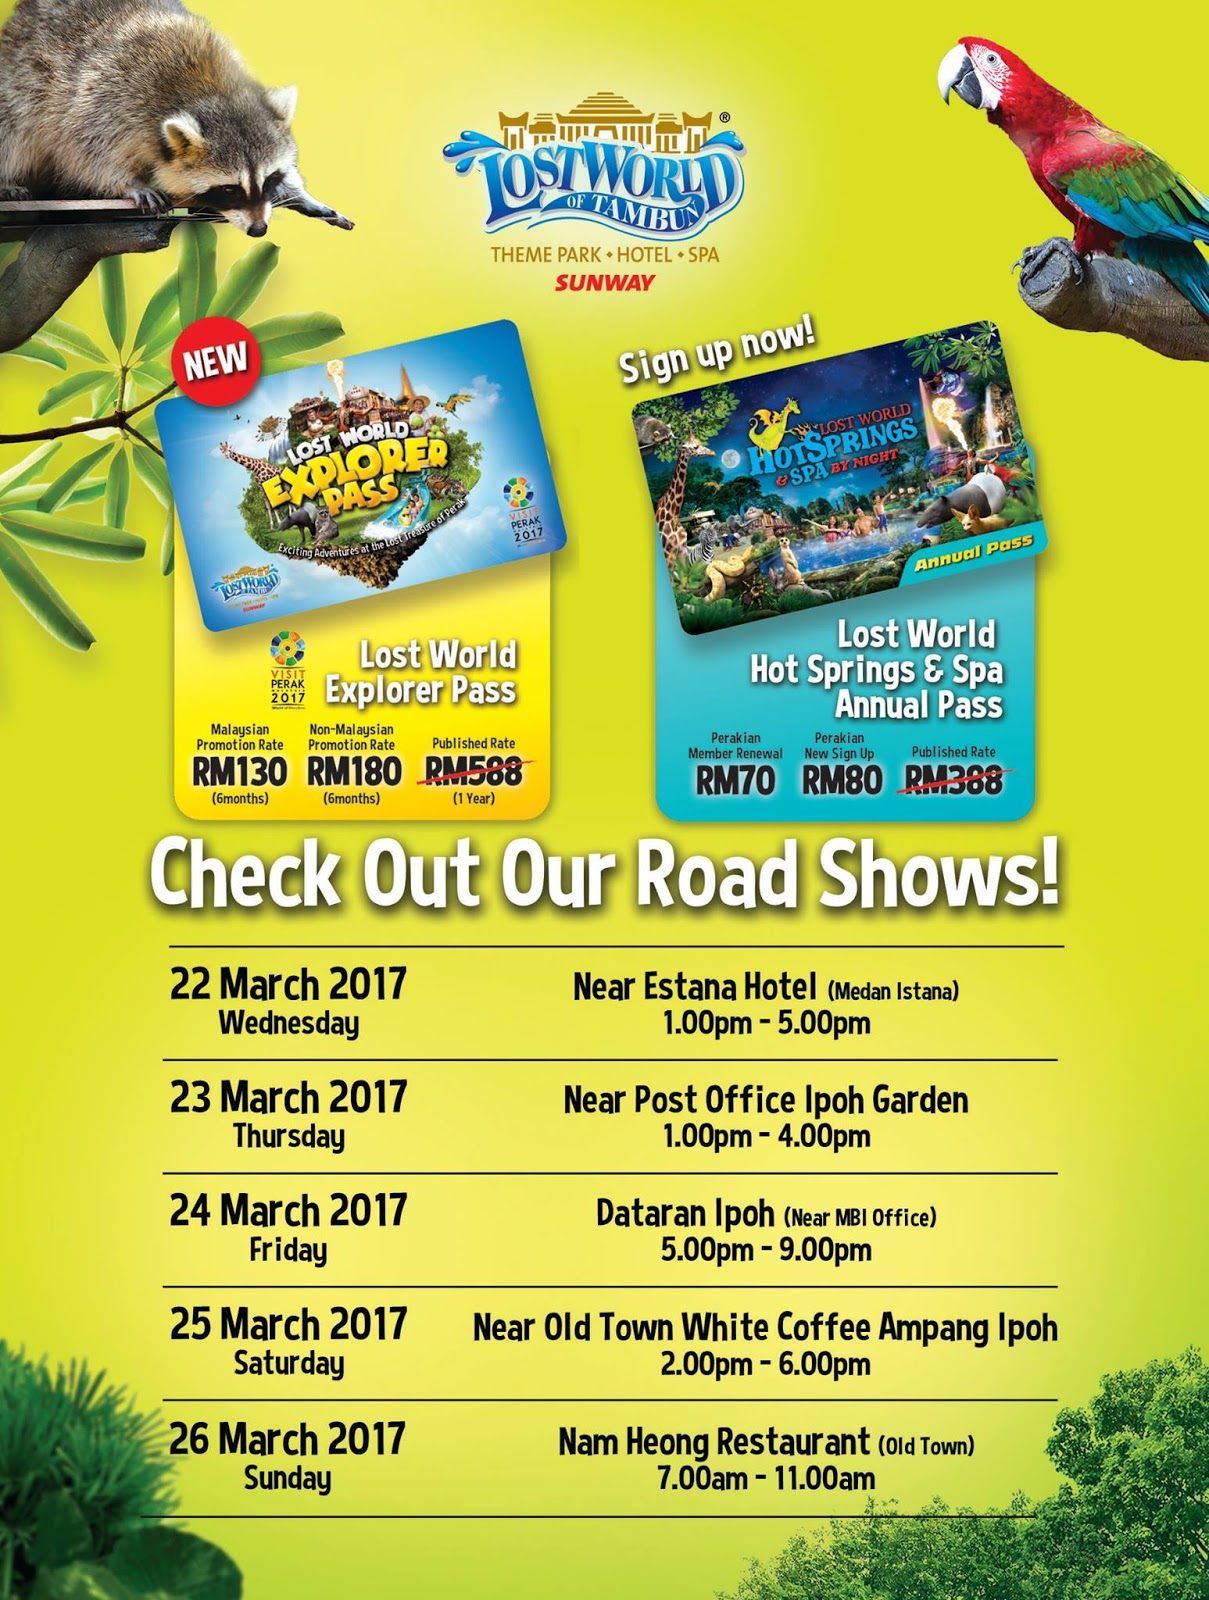 Sunway Lost World Of Tambun Explorer Pass Rm130 6 Months Hot